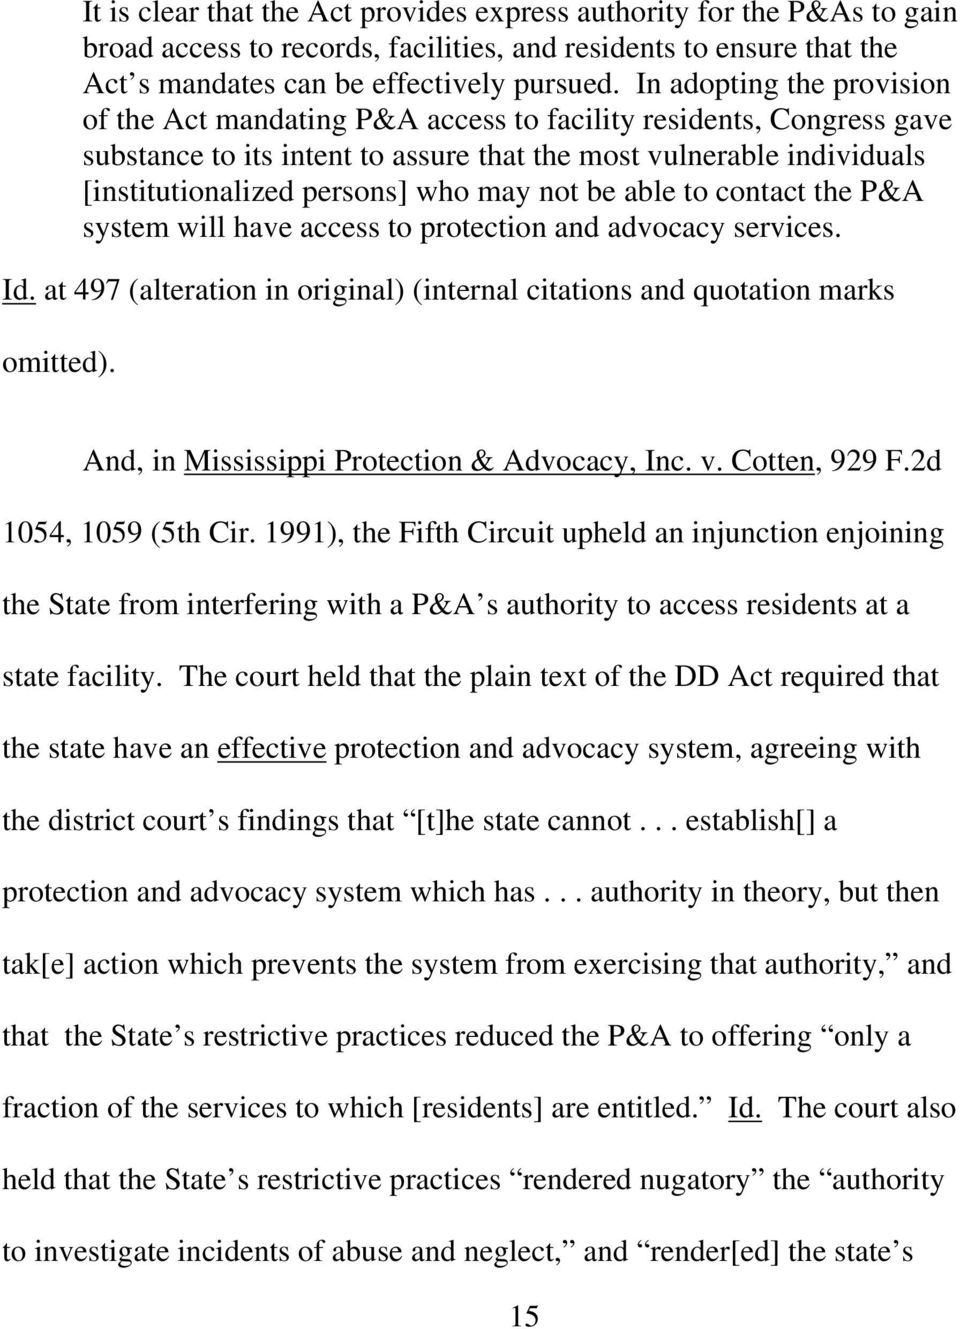 may not be able to contact the P&A system will have access to protection and advocacy services. Id. at 497 (alteration in original) (internal citations and quotation marks omitted).